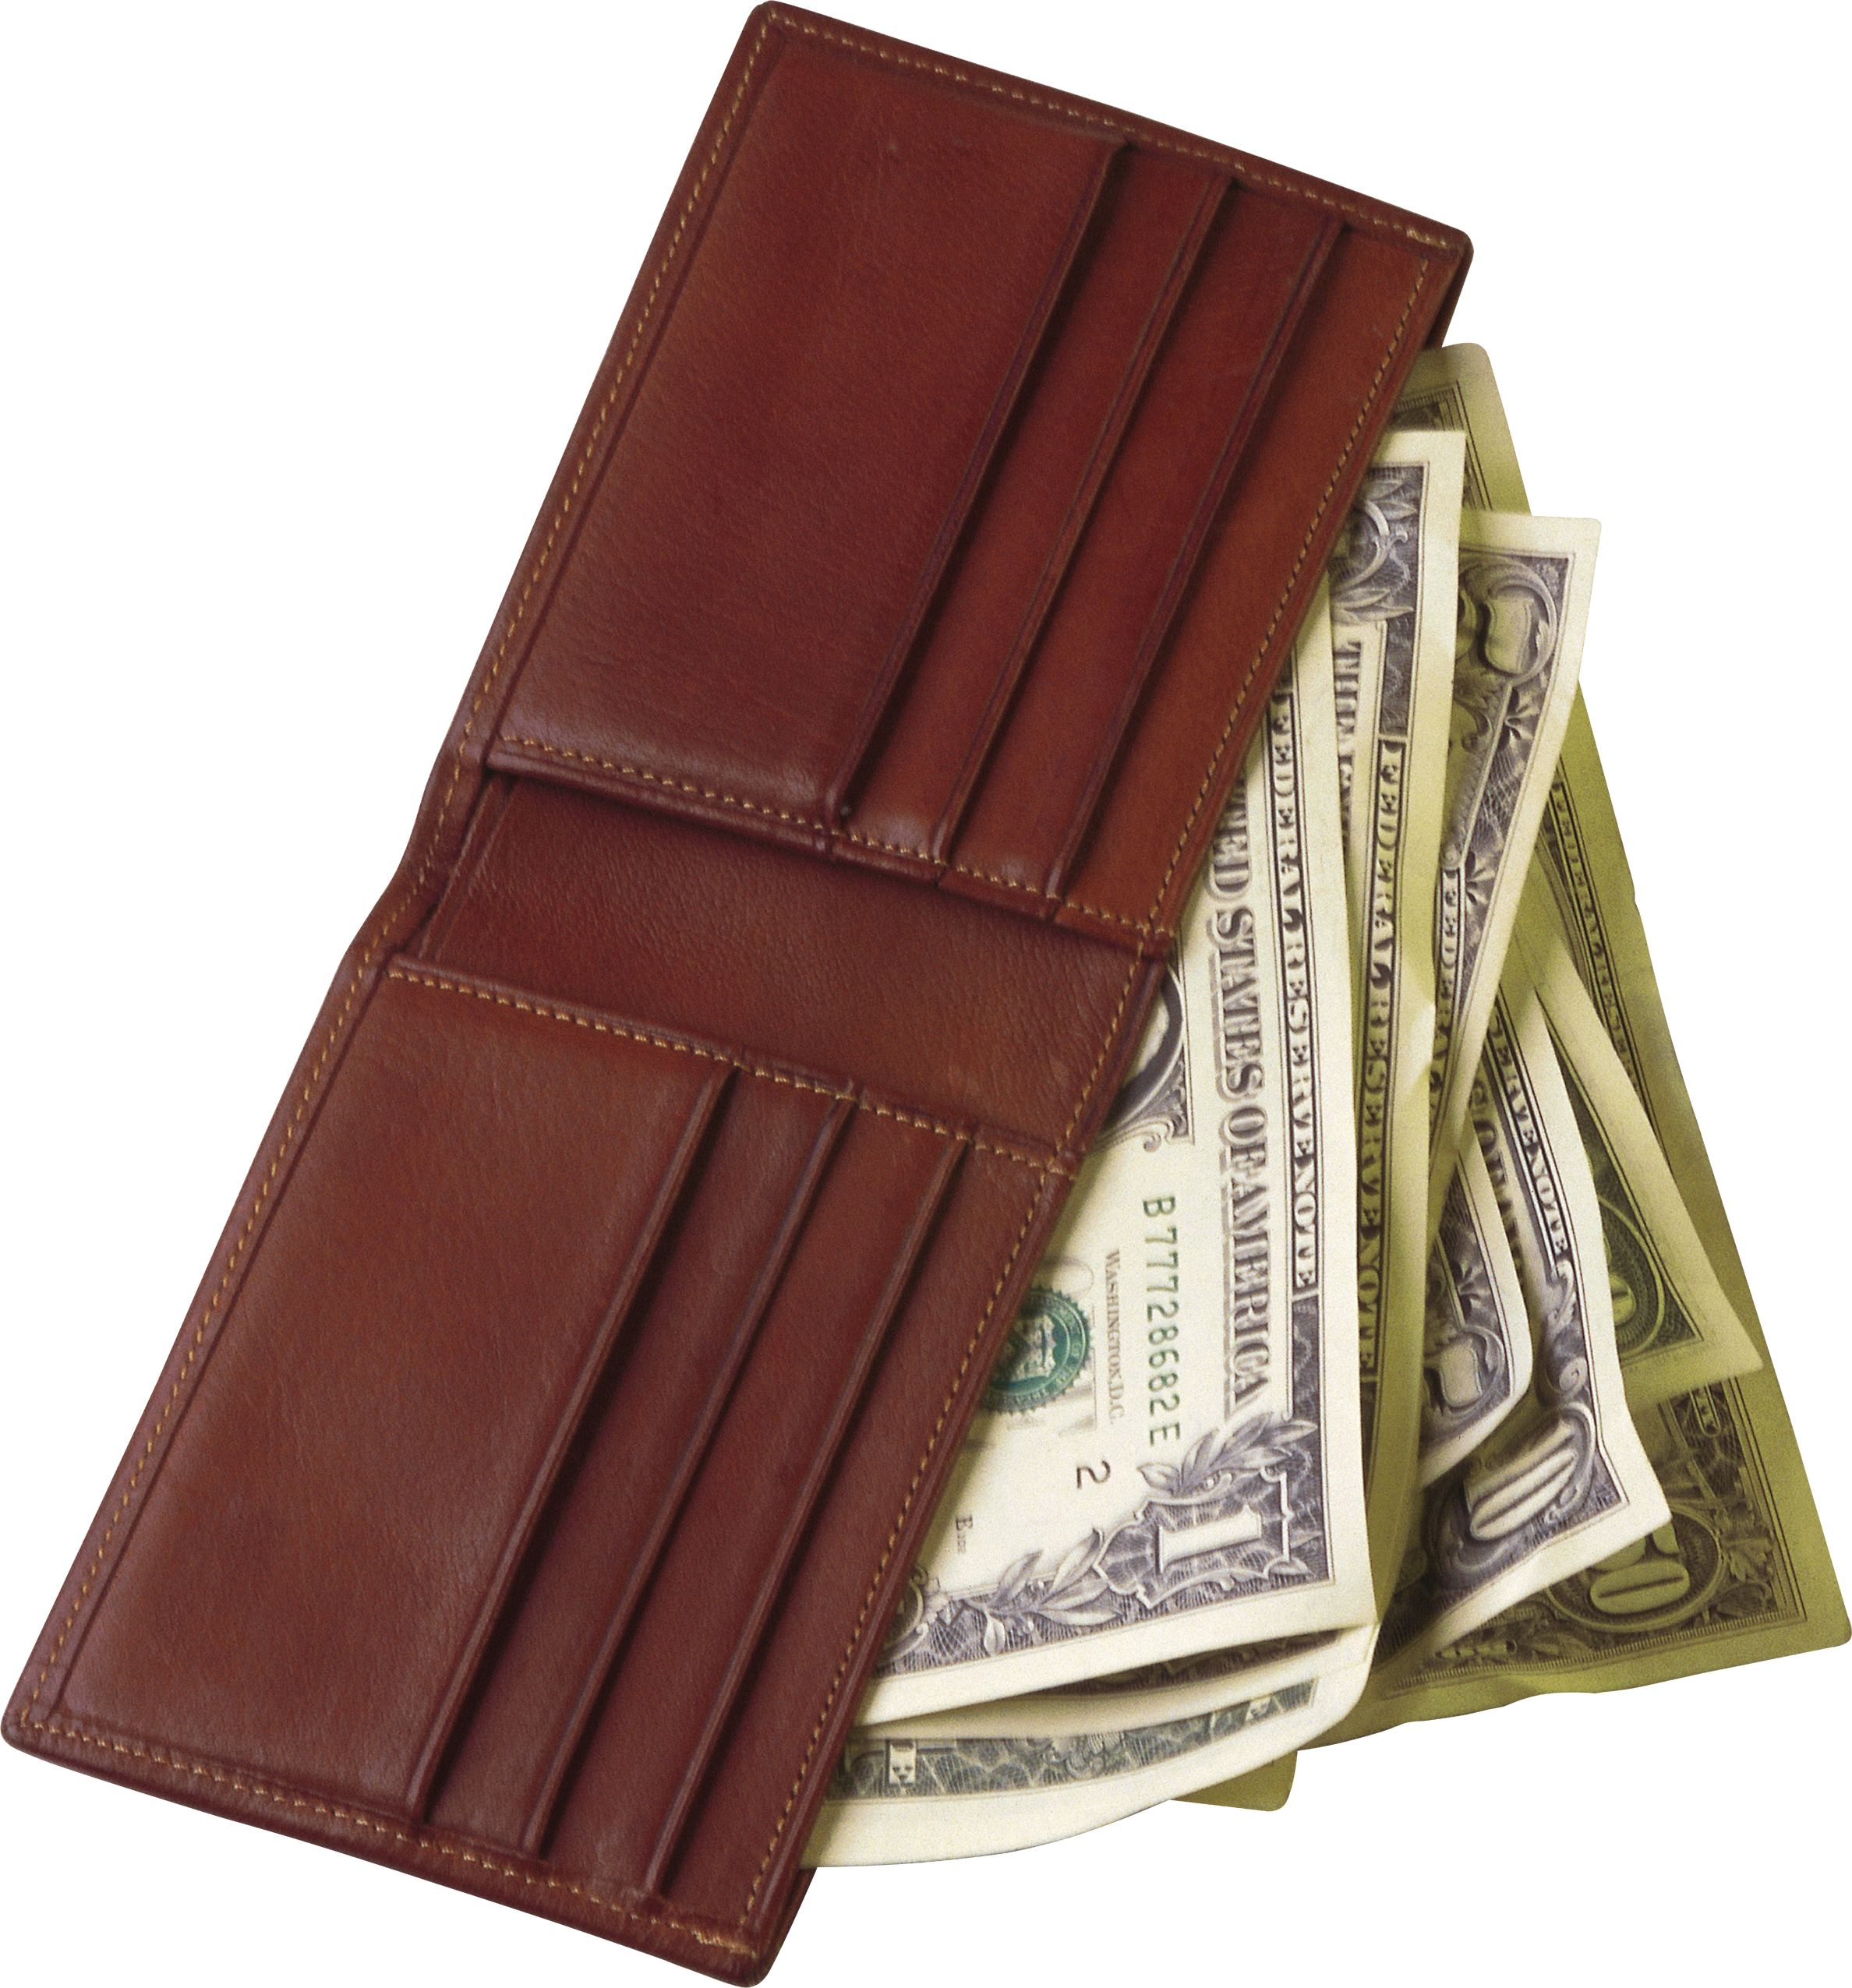 Money clipart purse. Wallet with one isolated